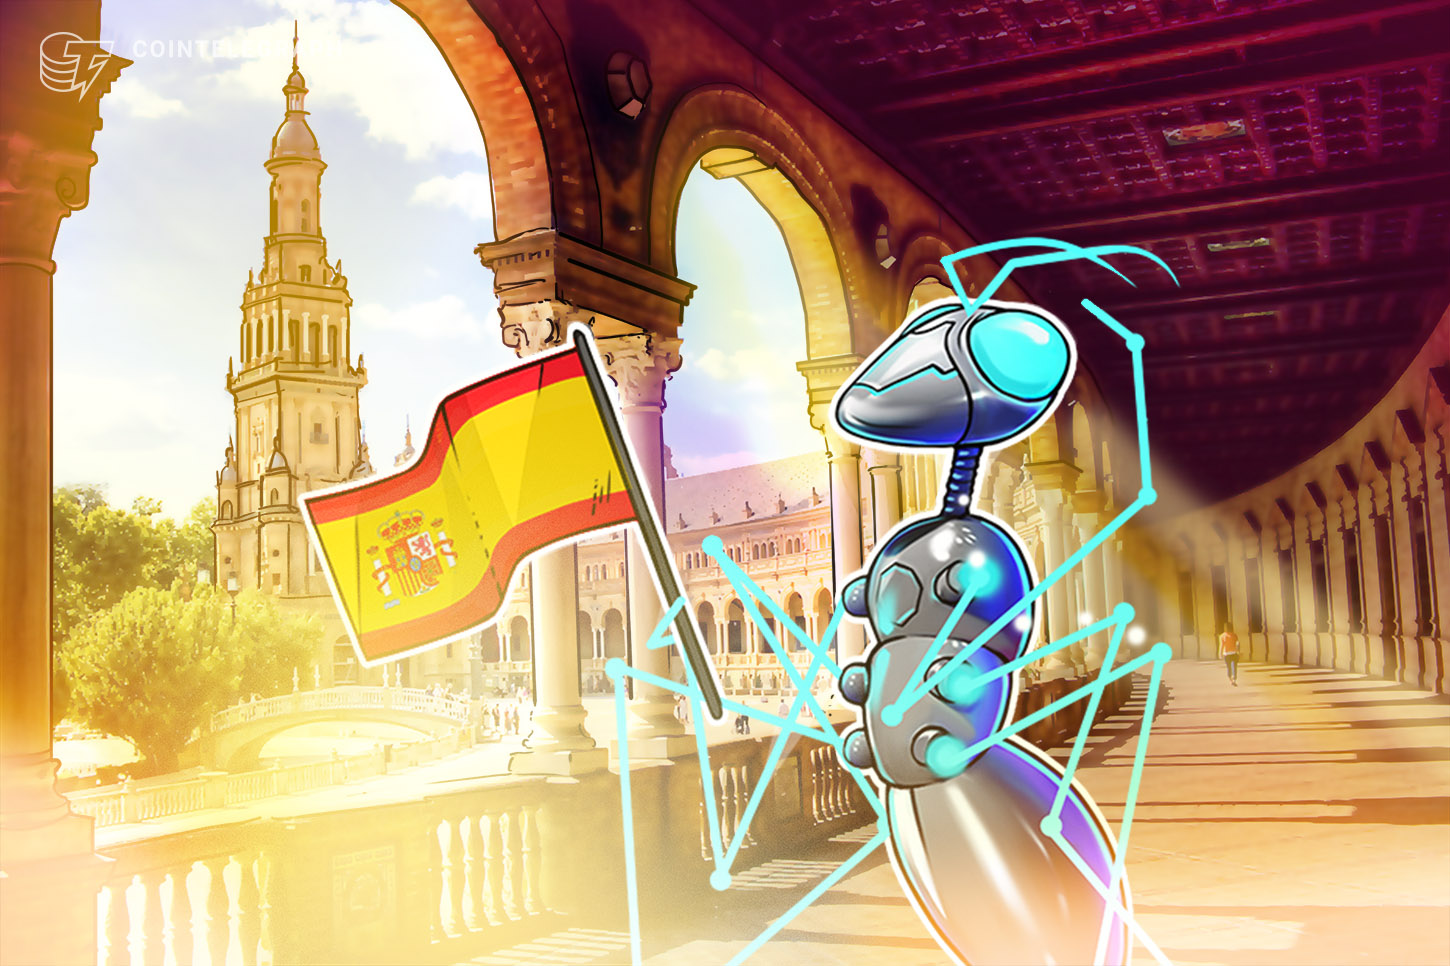 Spanish stock exchange ready to test blockchain-based SME financing system